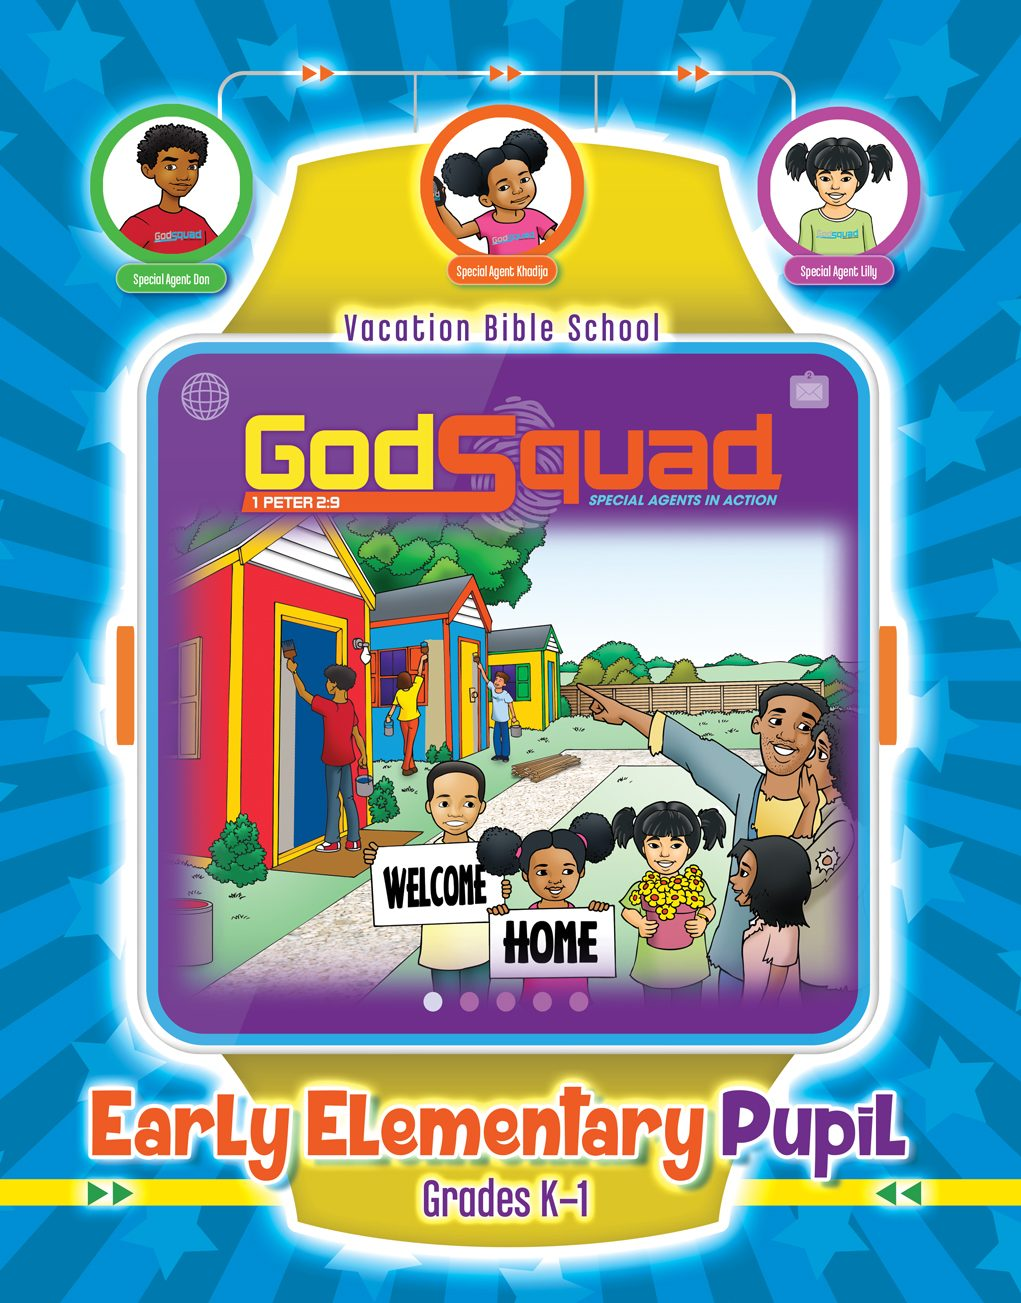 VBS GodSquad Early Elementary Pupil 2018